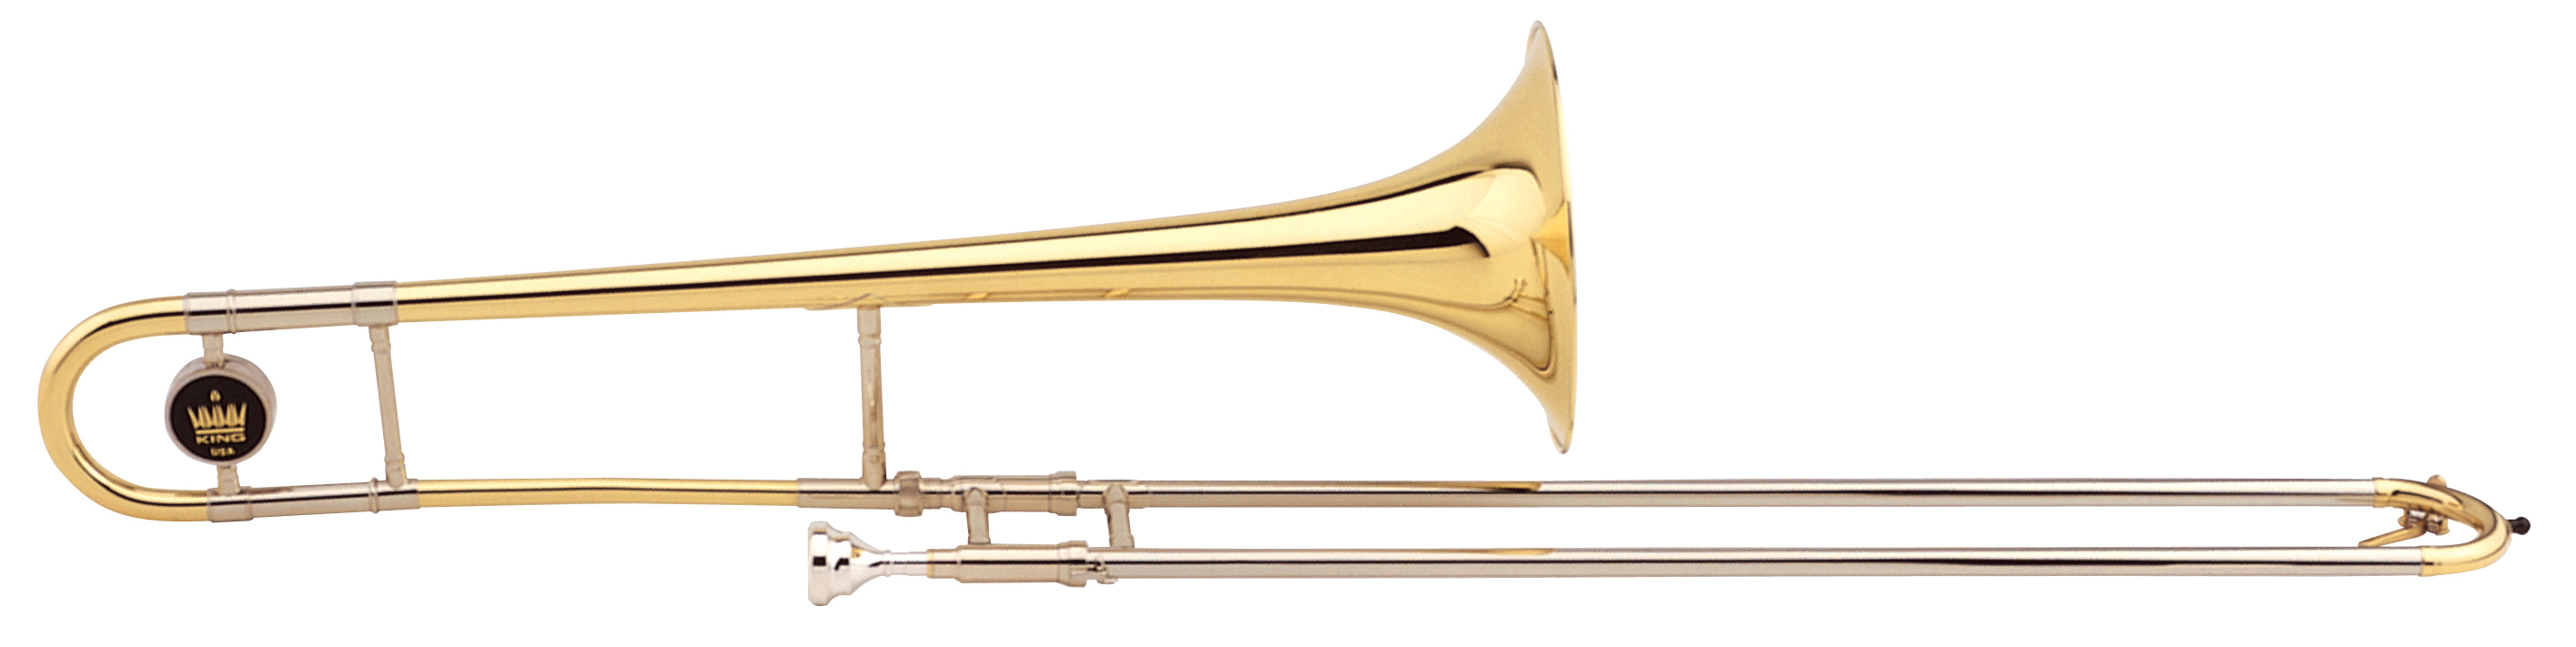 King Student Model 606 Tenor Trombone